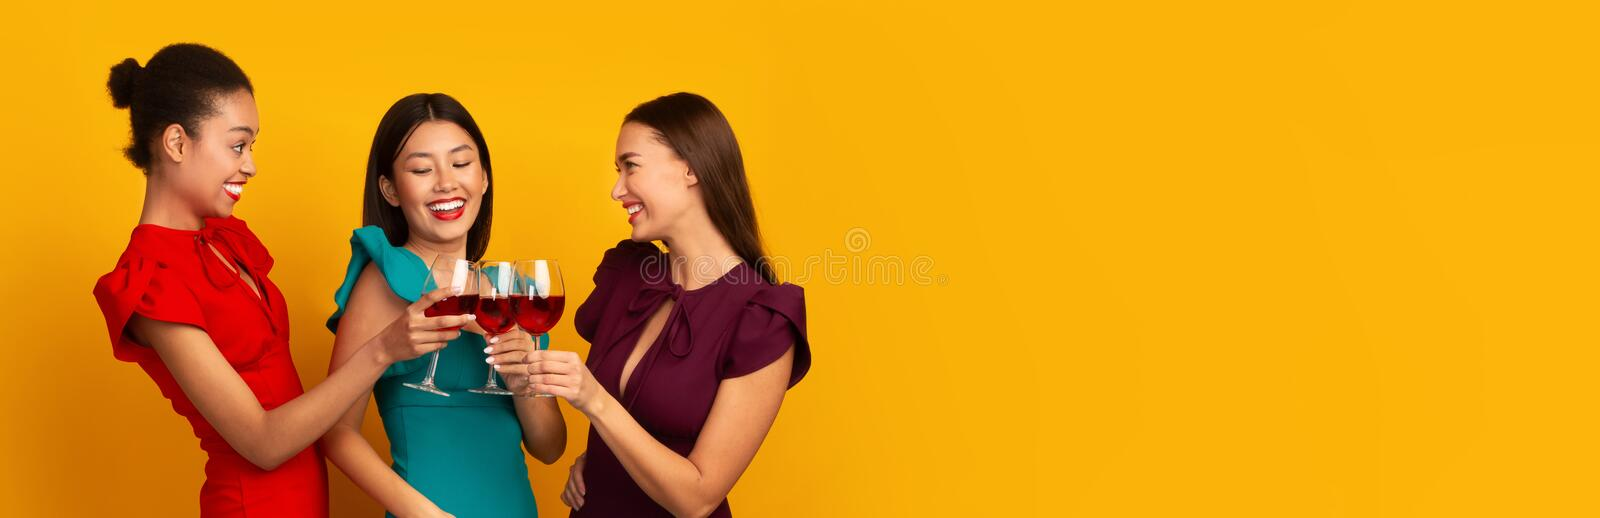 Three Women Clinking Red Wine Glasses Laughing Standing, Yellow Background royalty free stock photography